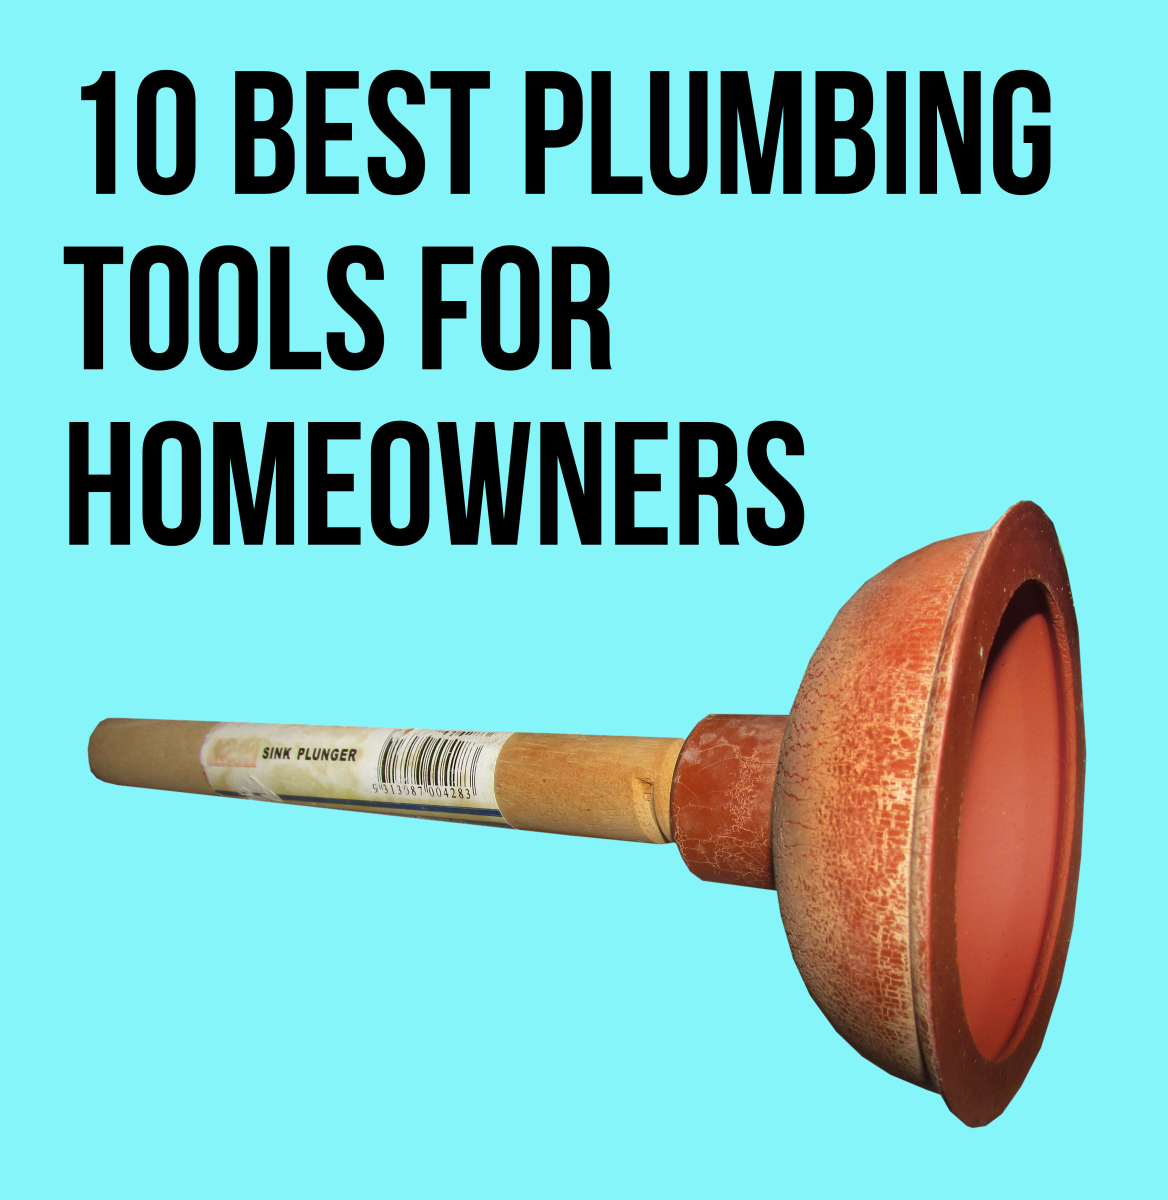 10 Best Plumbing Tools for a Homeowner